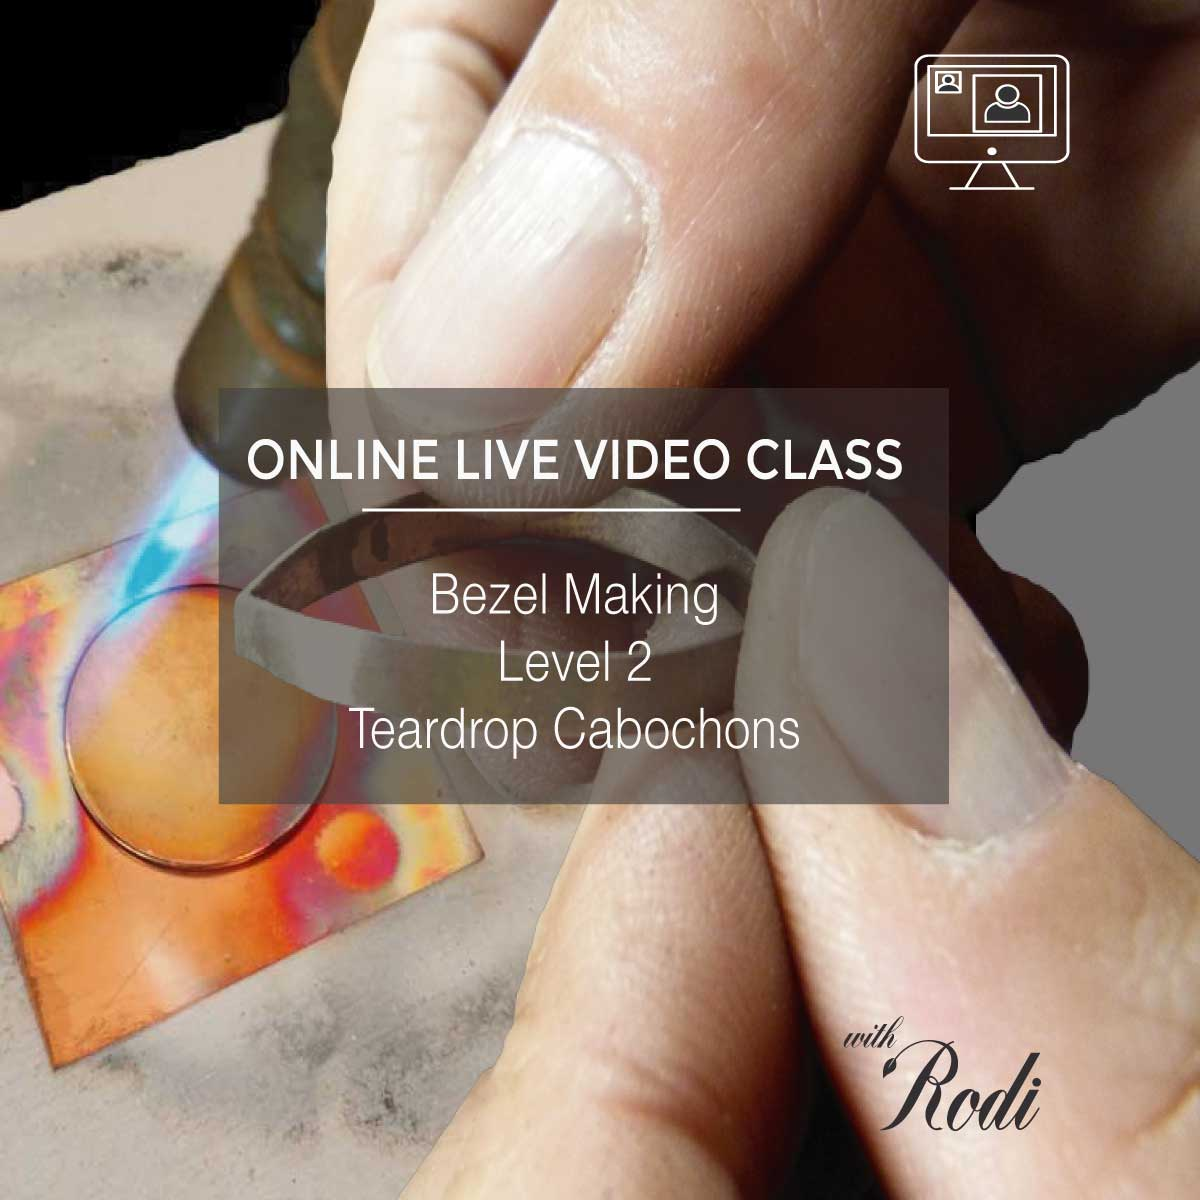 Bezel Making Level 2 (Teardrop Cabochons) - Live Video Class - Metal Clay Adventures